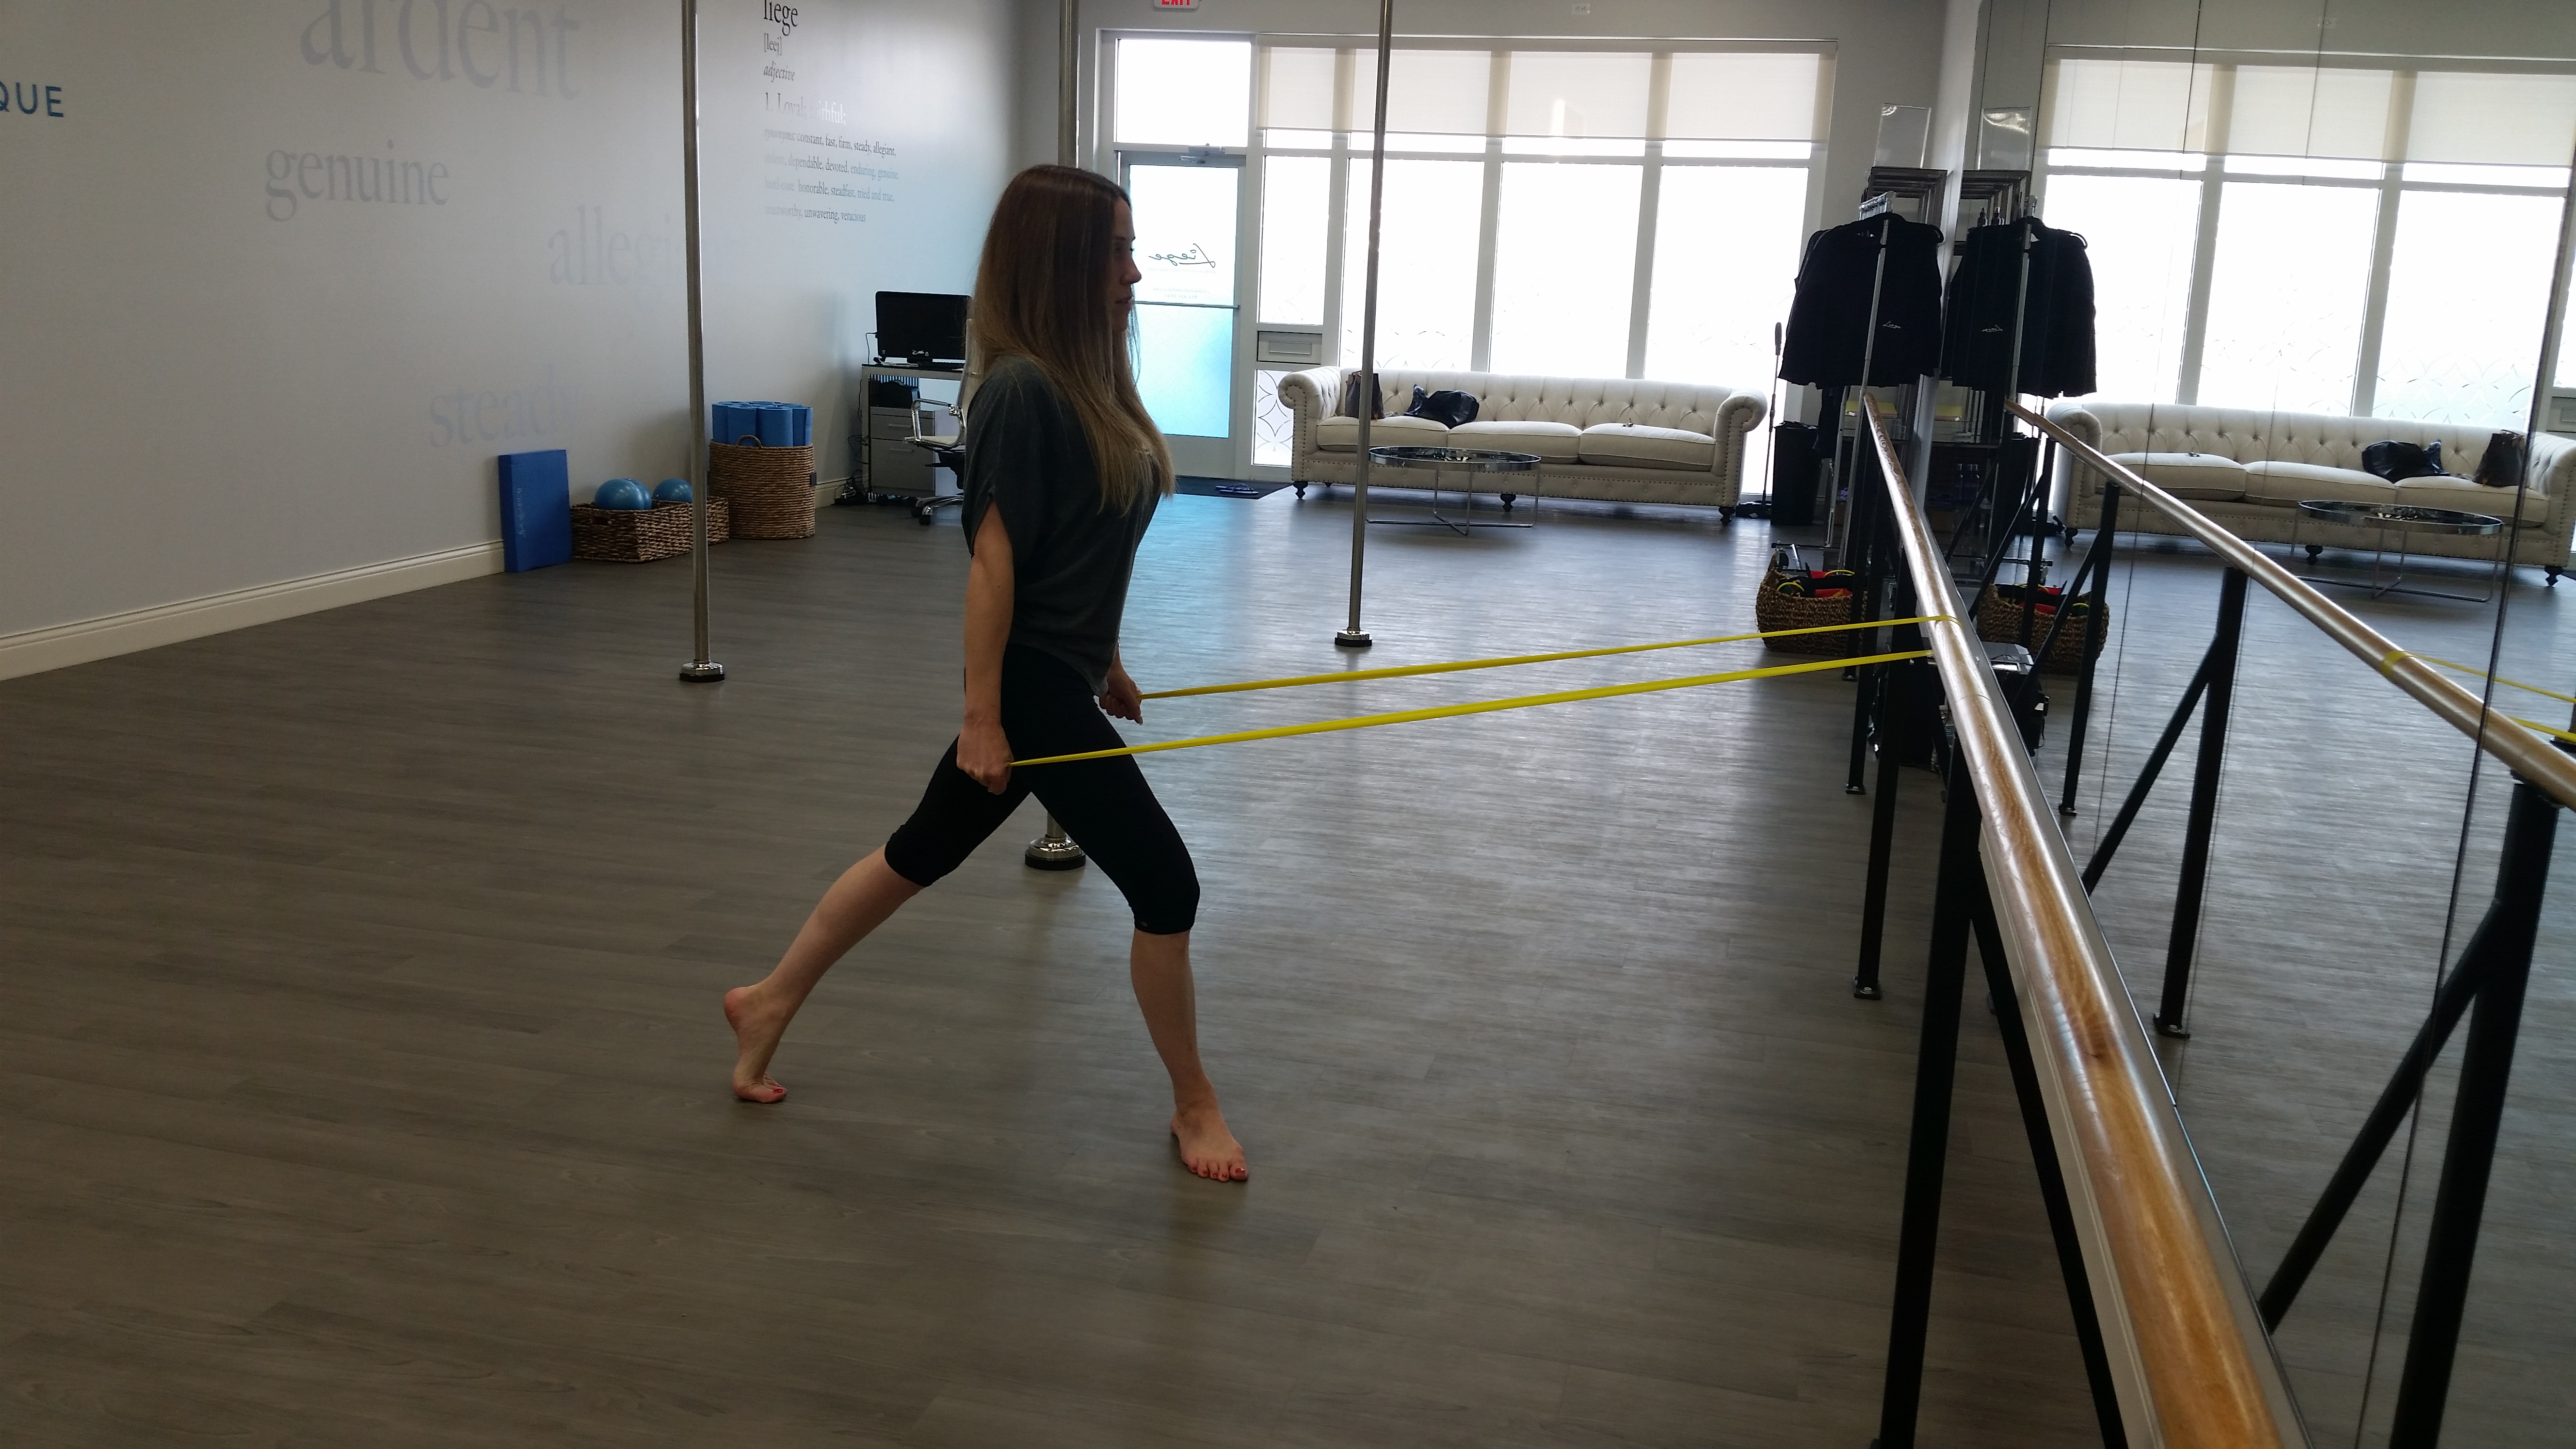 Instructor liege barre and pole jennifer esper received her total barre certification from the merrithew corporation in may of 2013 she completed her total barre foundation certification 1betcityfo Choice Image